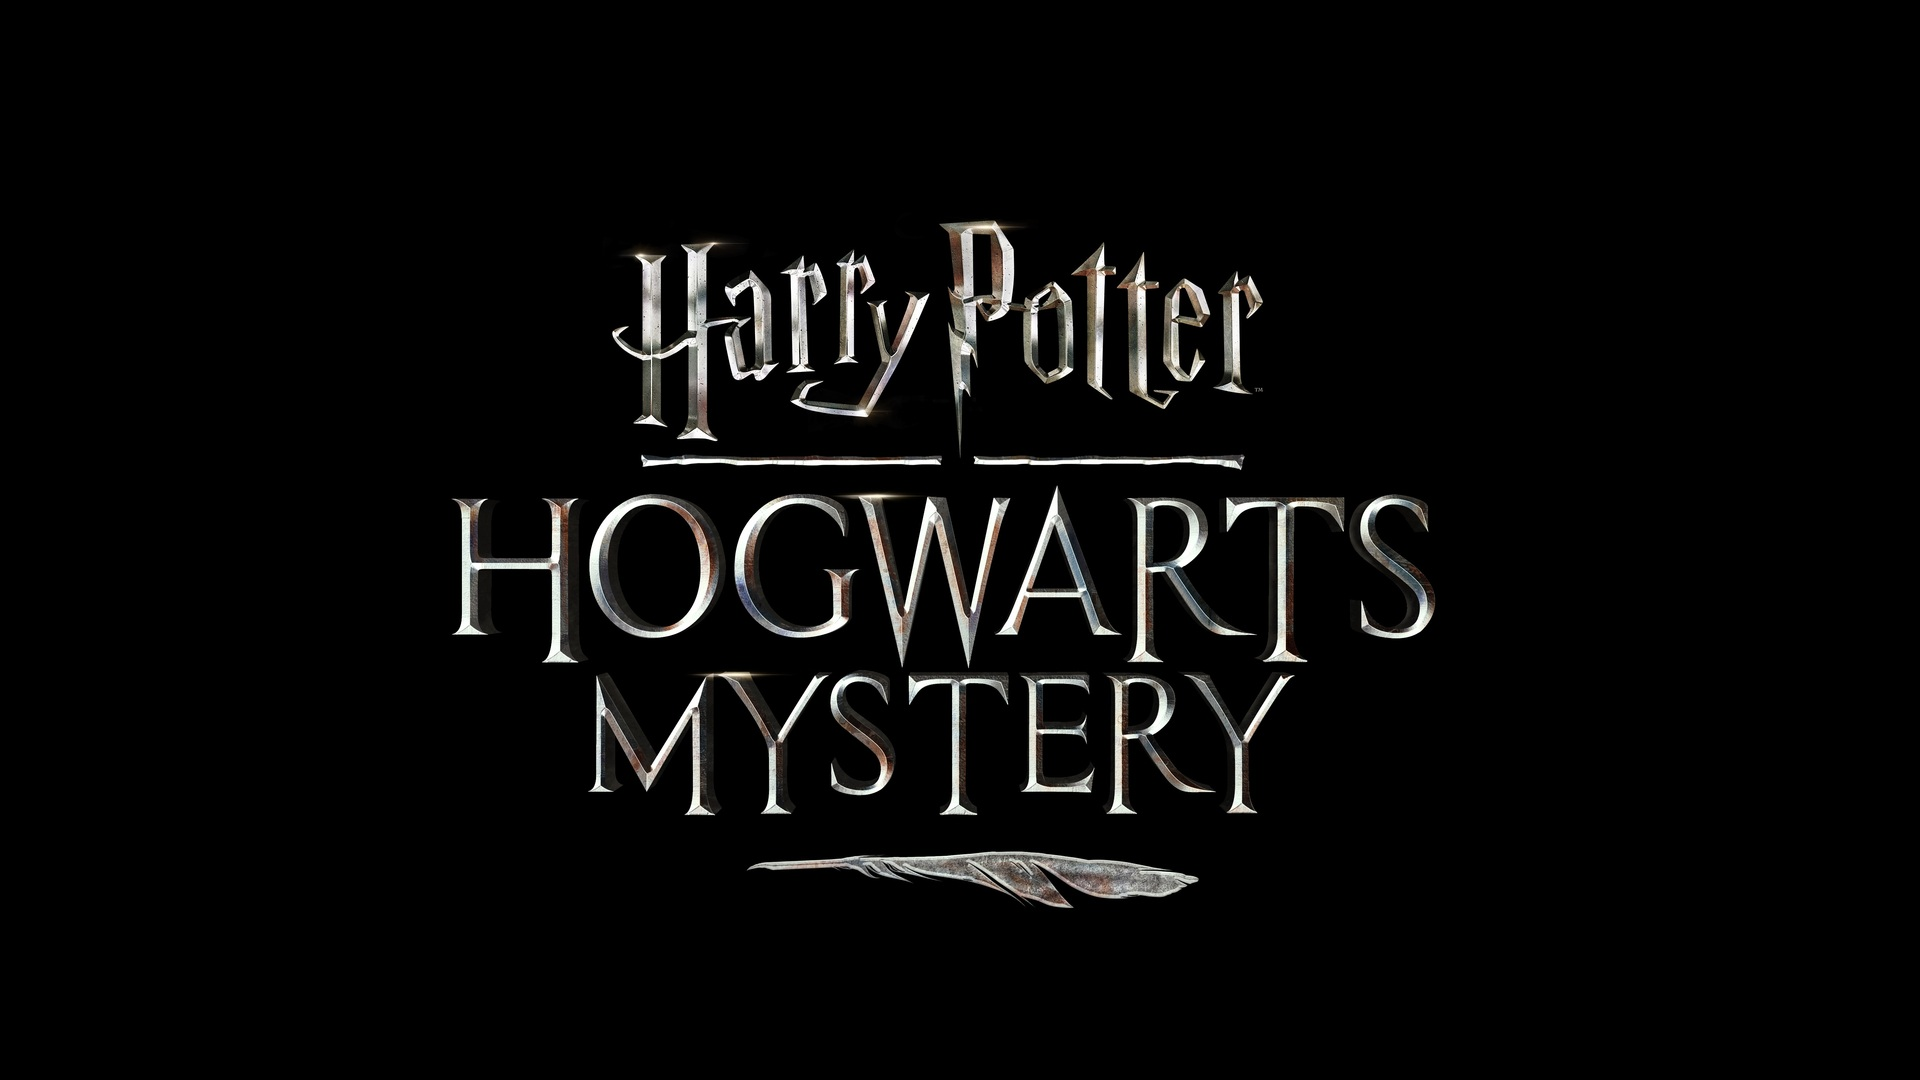 Must see Wallpaper Harry Potter Laptop - harry-potter-hogwarts-mystery-game-logo-gc-1920x1080  Graphic_52616.jpg